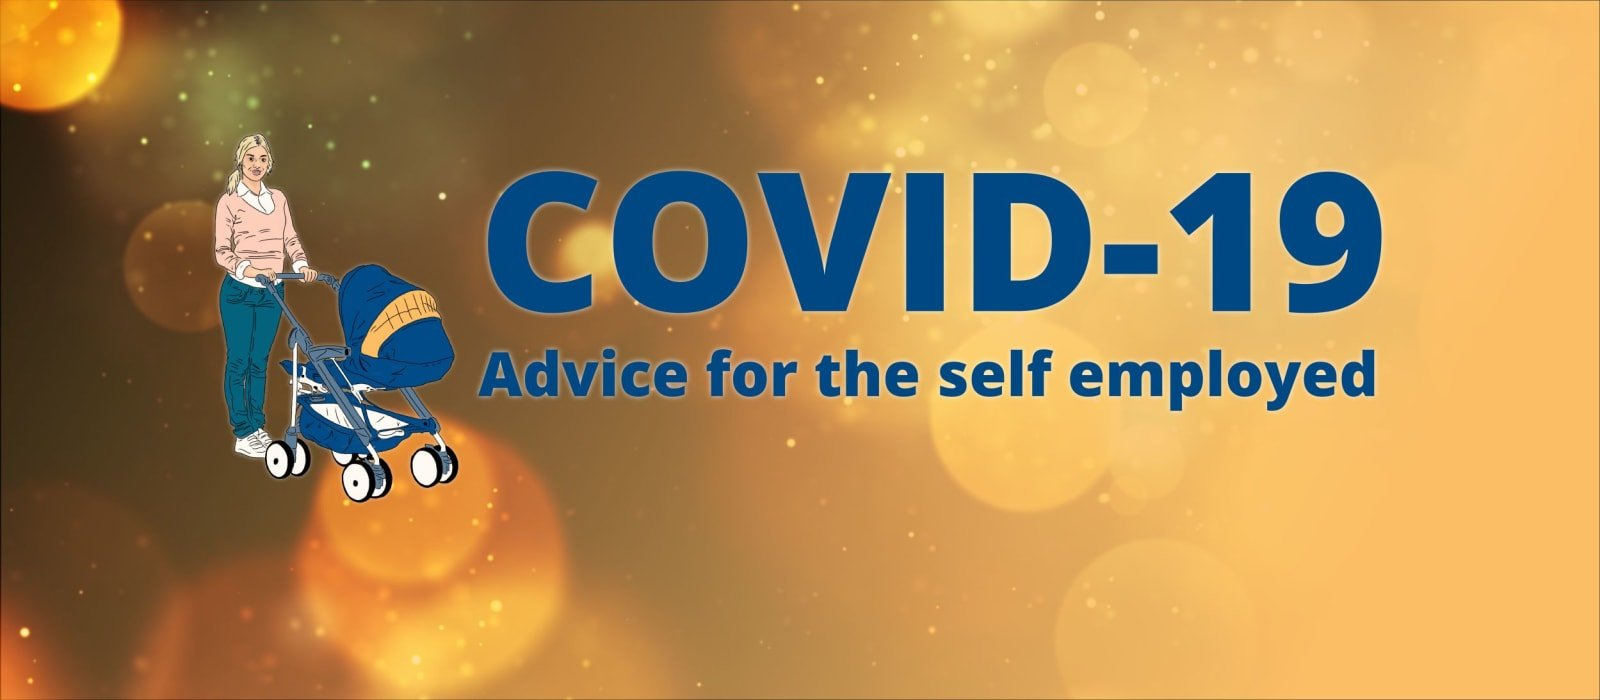 COVID-19: Self Employment Support - Updated 5/11/20